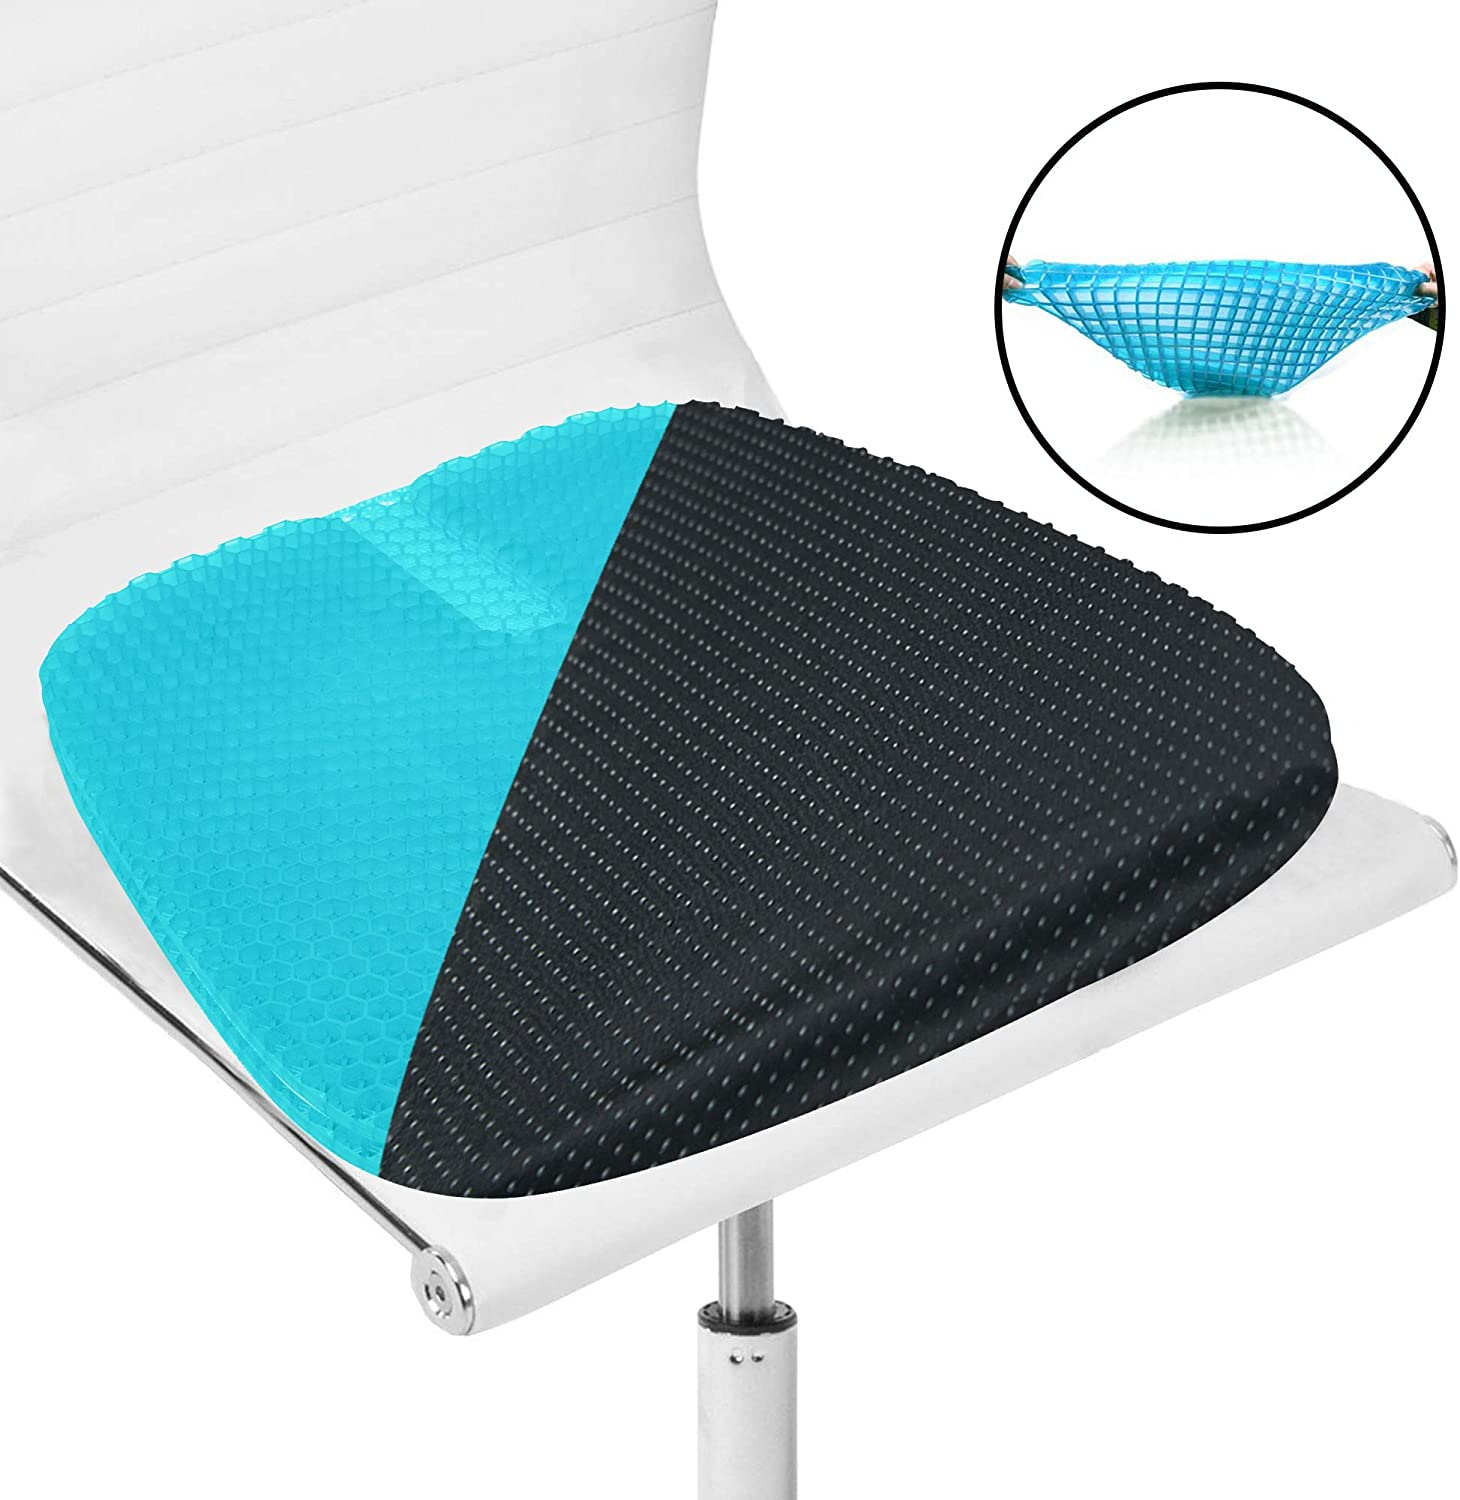 LHOTSE Gel Sitter Seat Double Thick Cushion with Non-Slip Cover, Multi-Use Breathable Orthopedic Cushion for Car, Office Chair, Tailbone Pain Relief